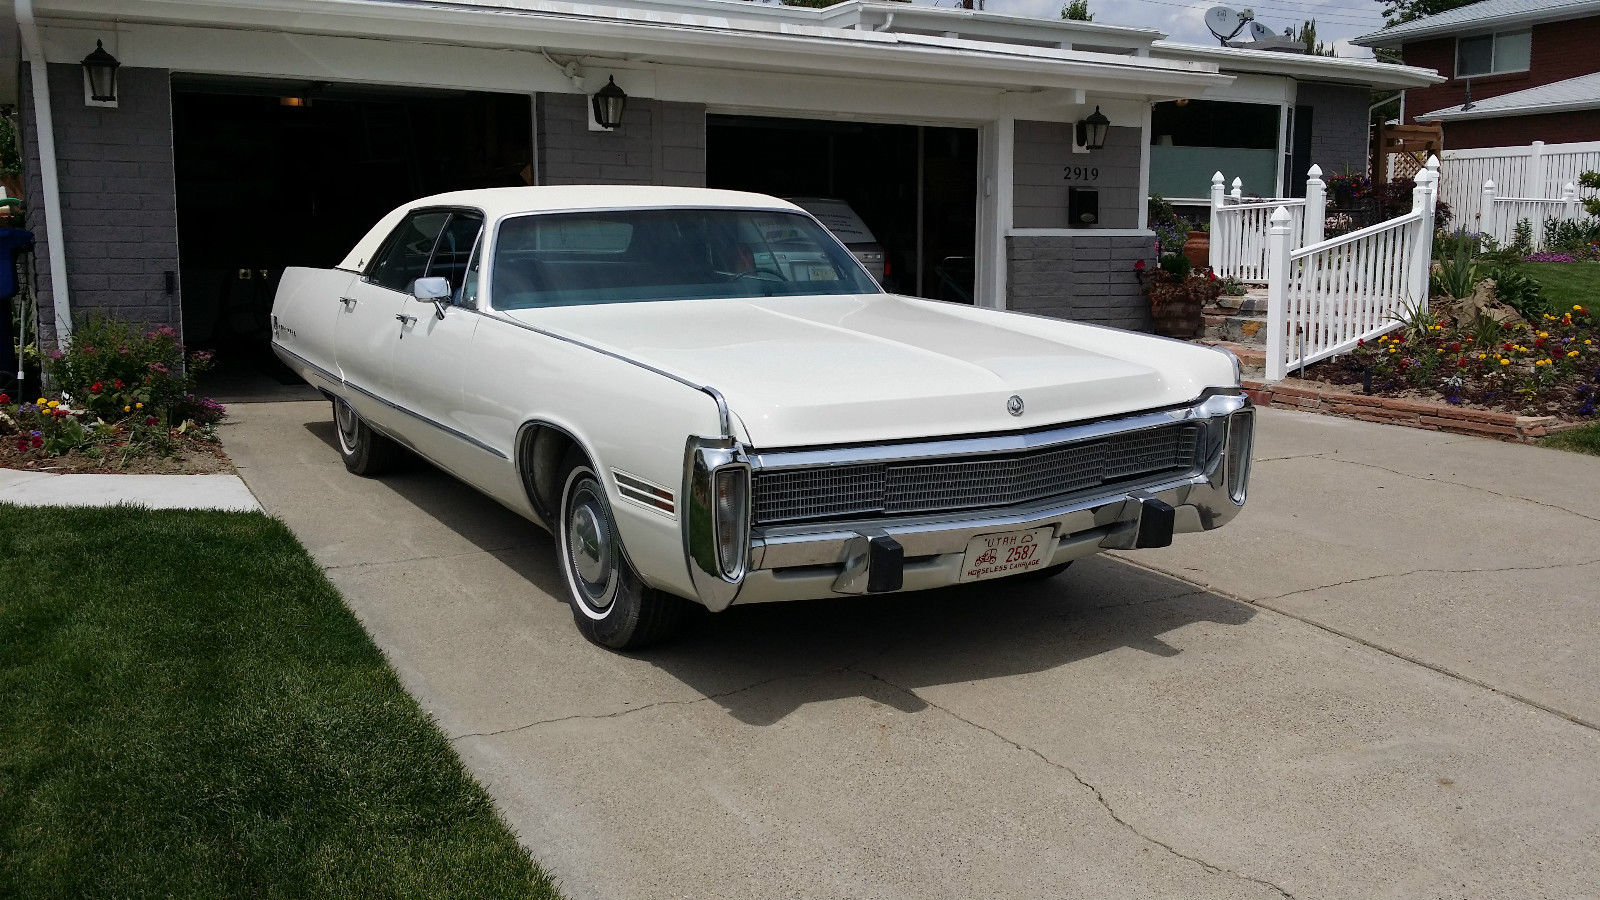 All American Classic Cars: 1973 Imperial Le Baron 4-Door Hardtop